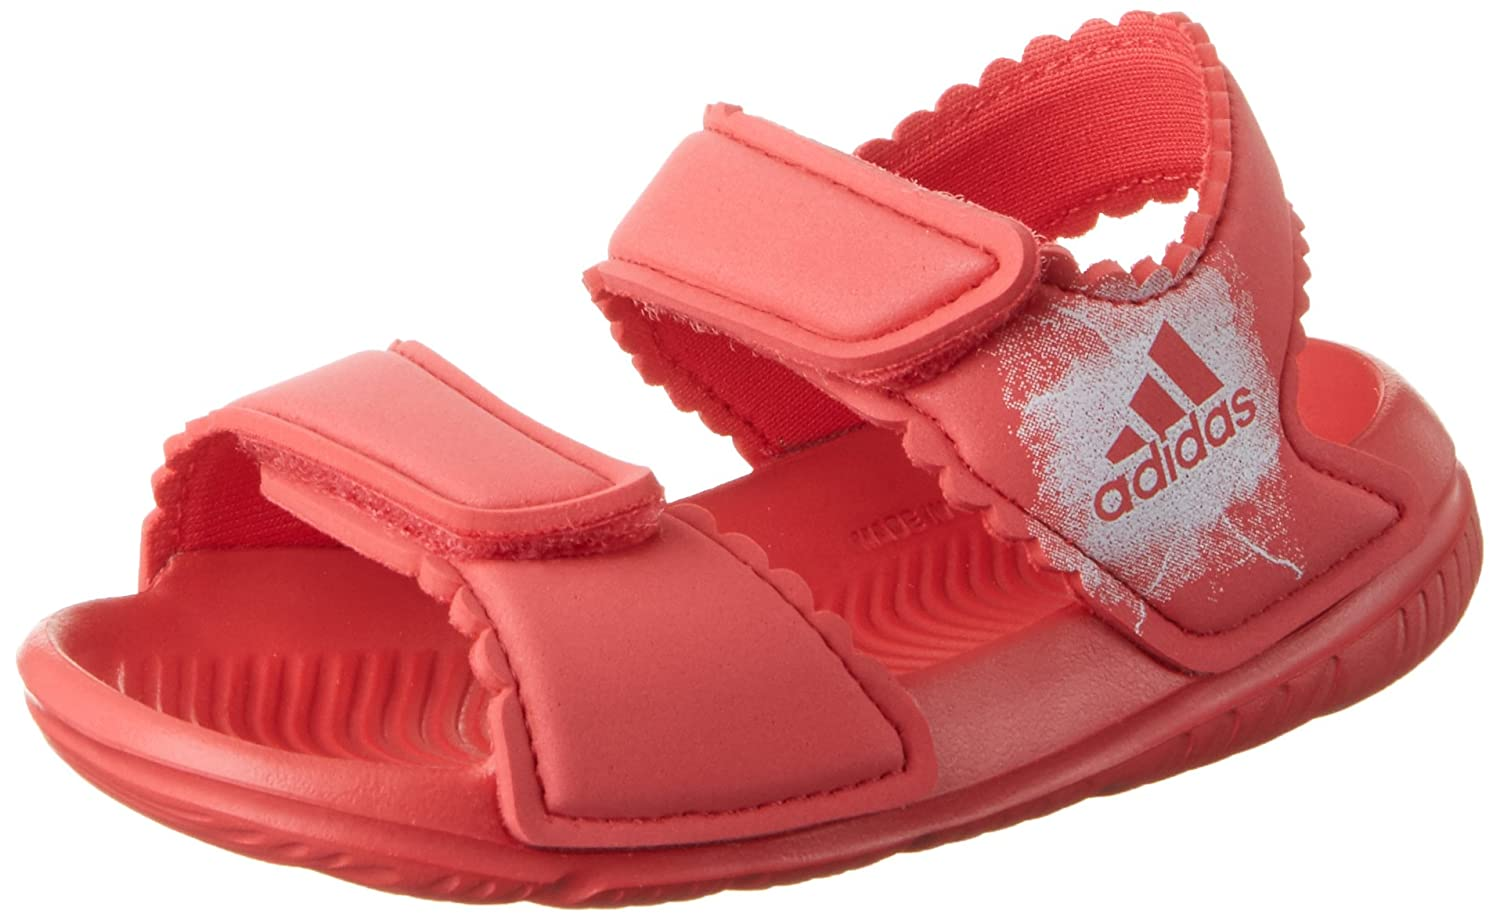 adidas Baby Girls' Altaswim Sandals BA7868